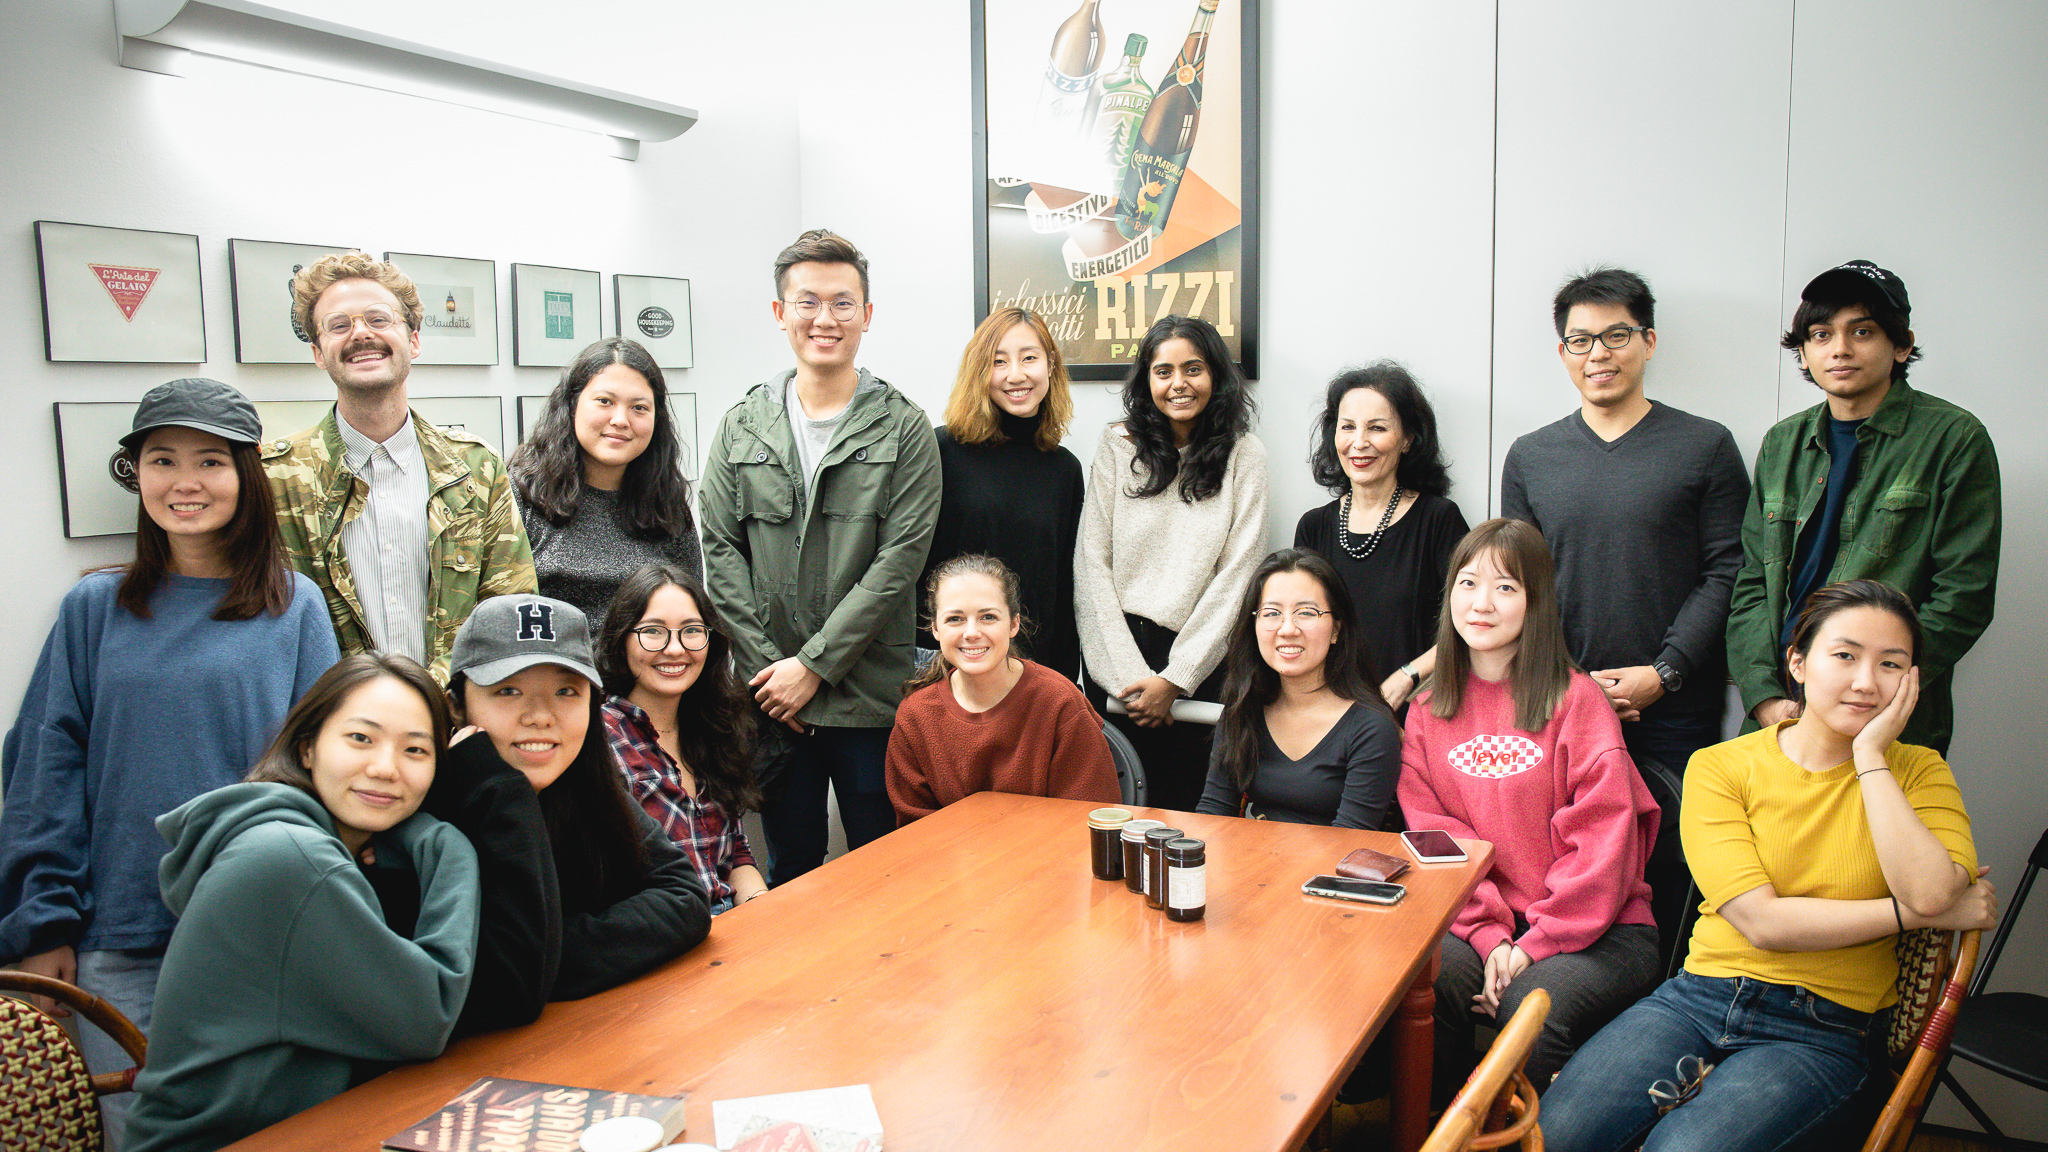 students pose with Louise Fili in her studio